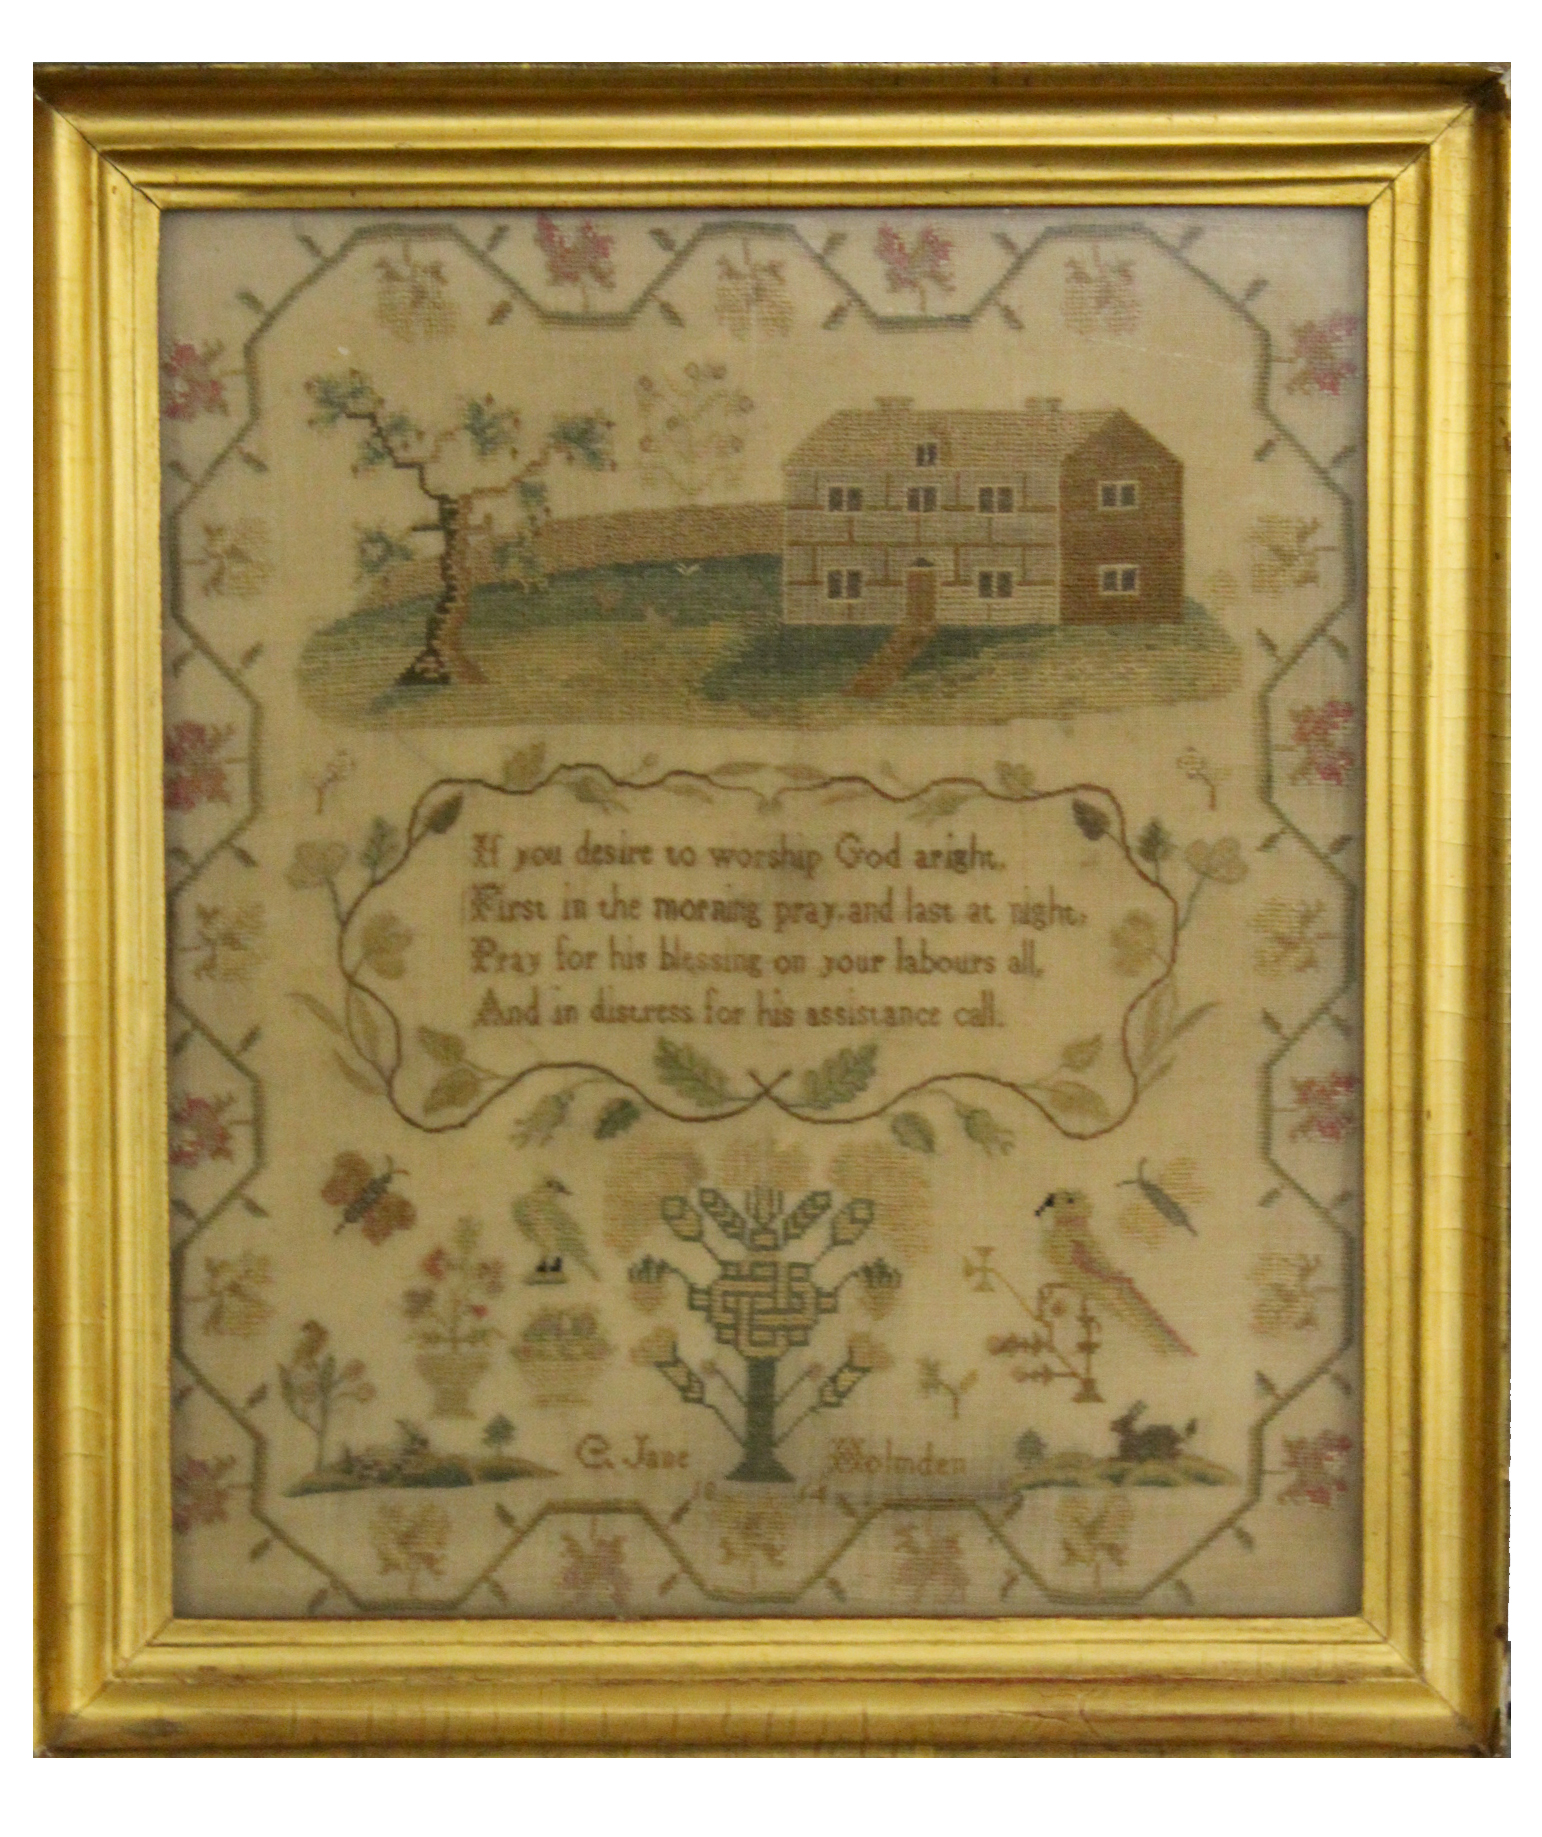 Lot 747 - E Jane Holmden (1814) silk work sampler featuring a country house to top above a religious verse